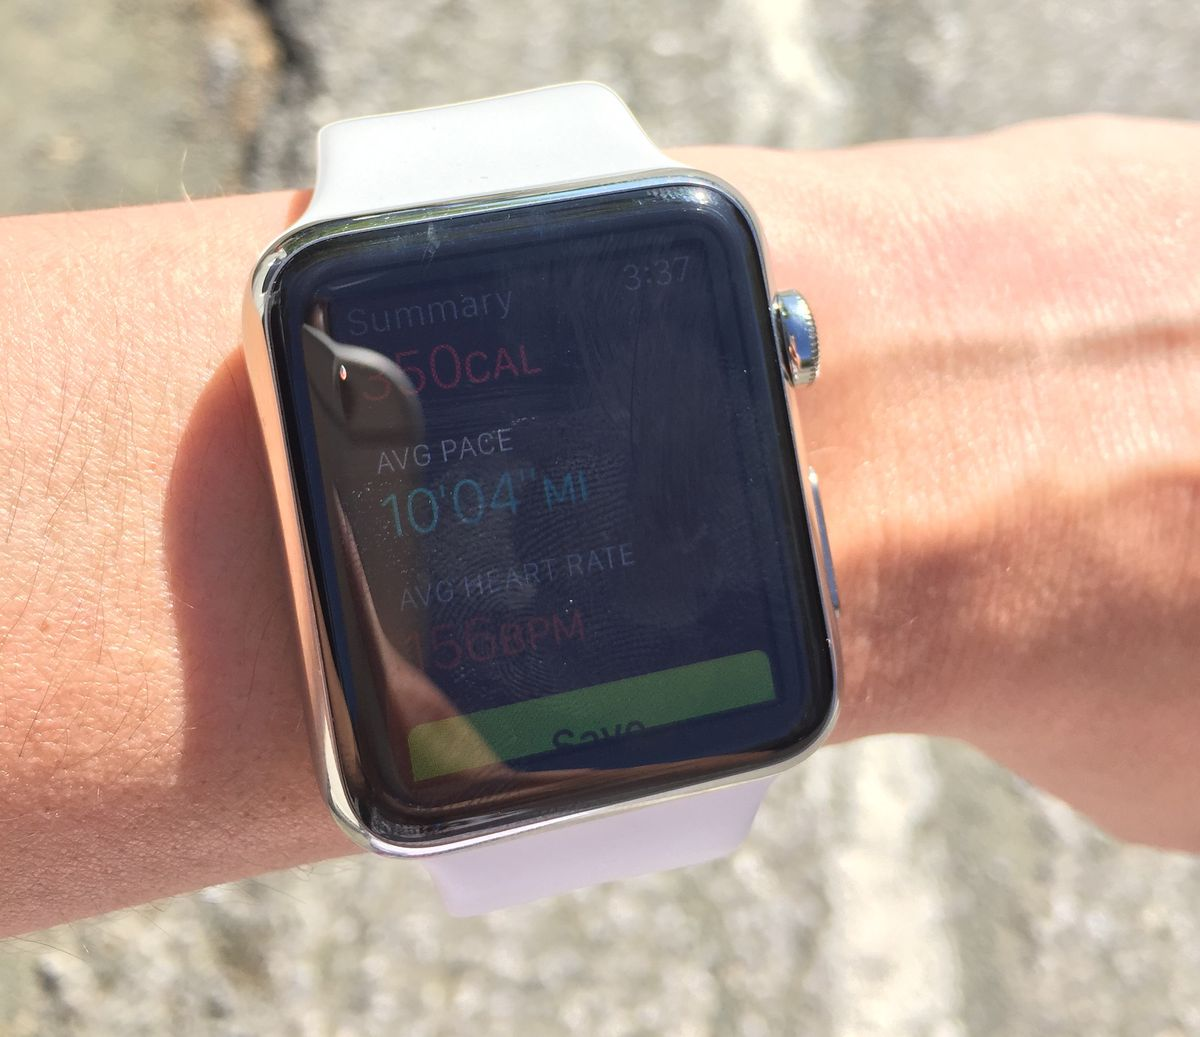 Apple Watch's display isn't highly visible in certain outdoor lighting.